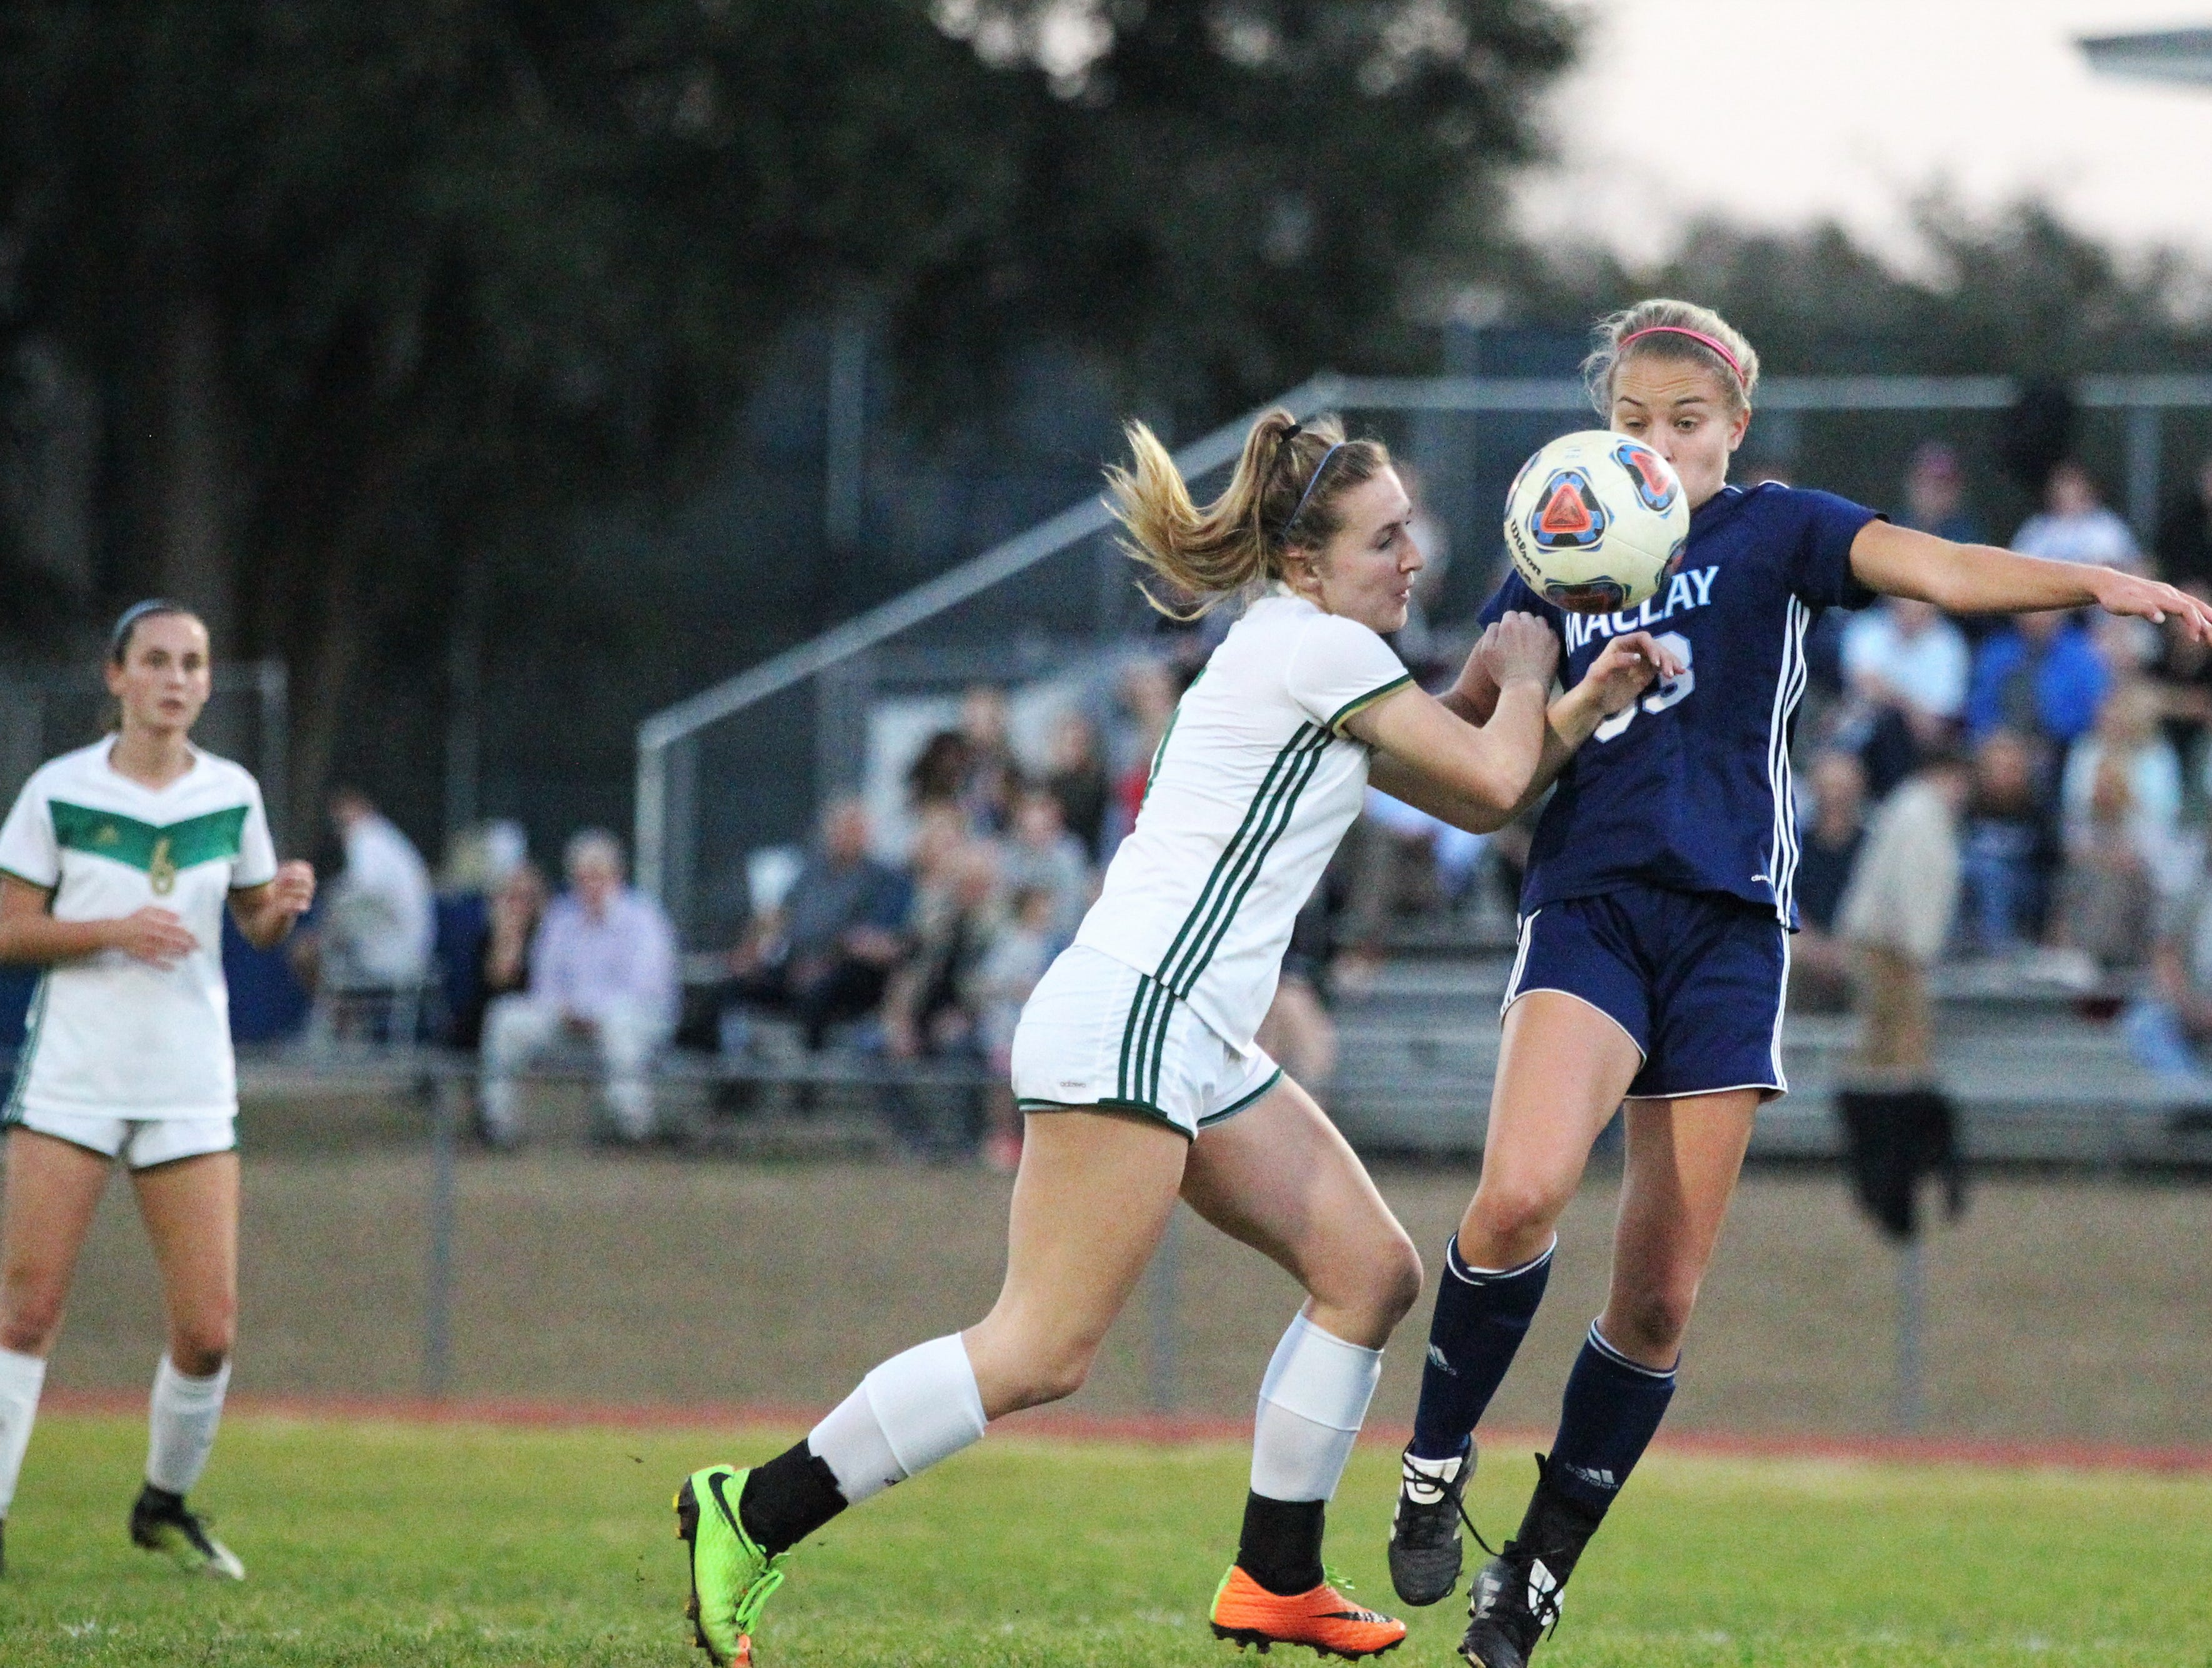 Maclay's Colleen Donahue is fouled while trying to bring down an air ball as Maclay's girls soccer team beat St. Joseph Academy 4-0 in a Region 1-1A quarterfinal on Jan. 5, 2019.